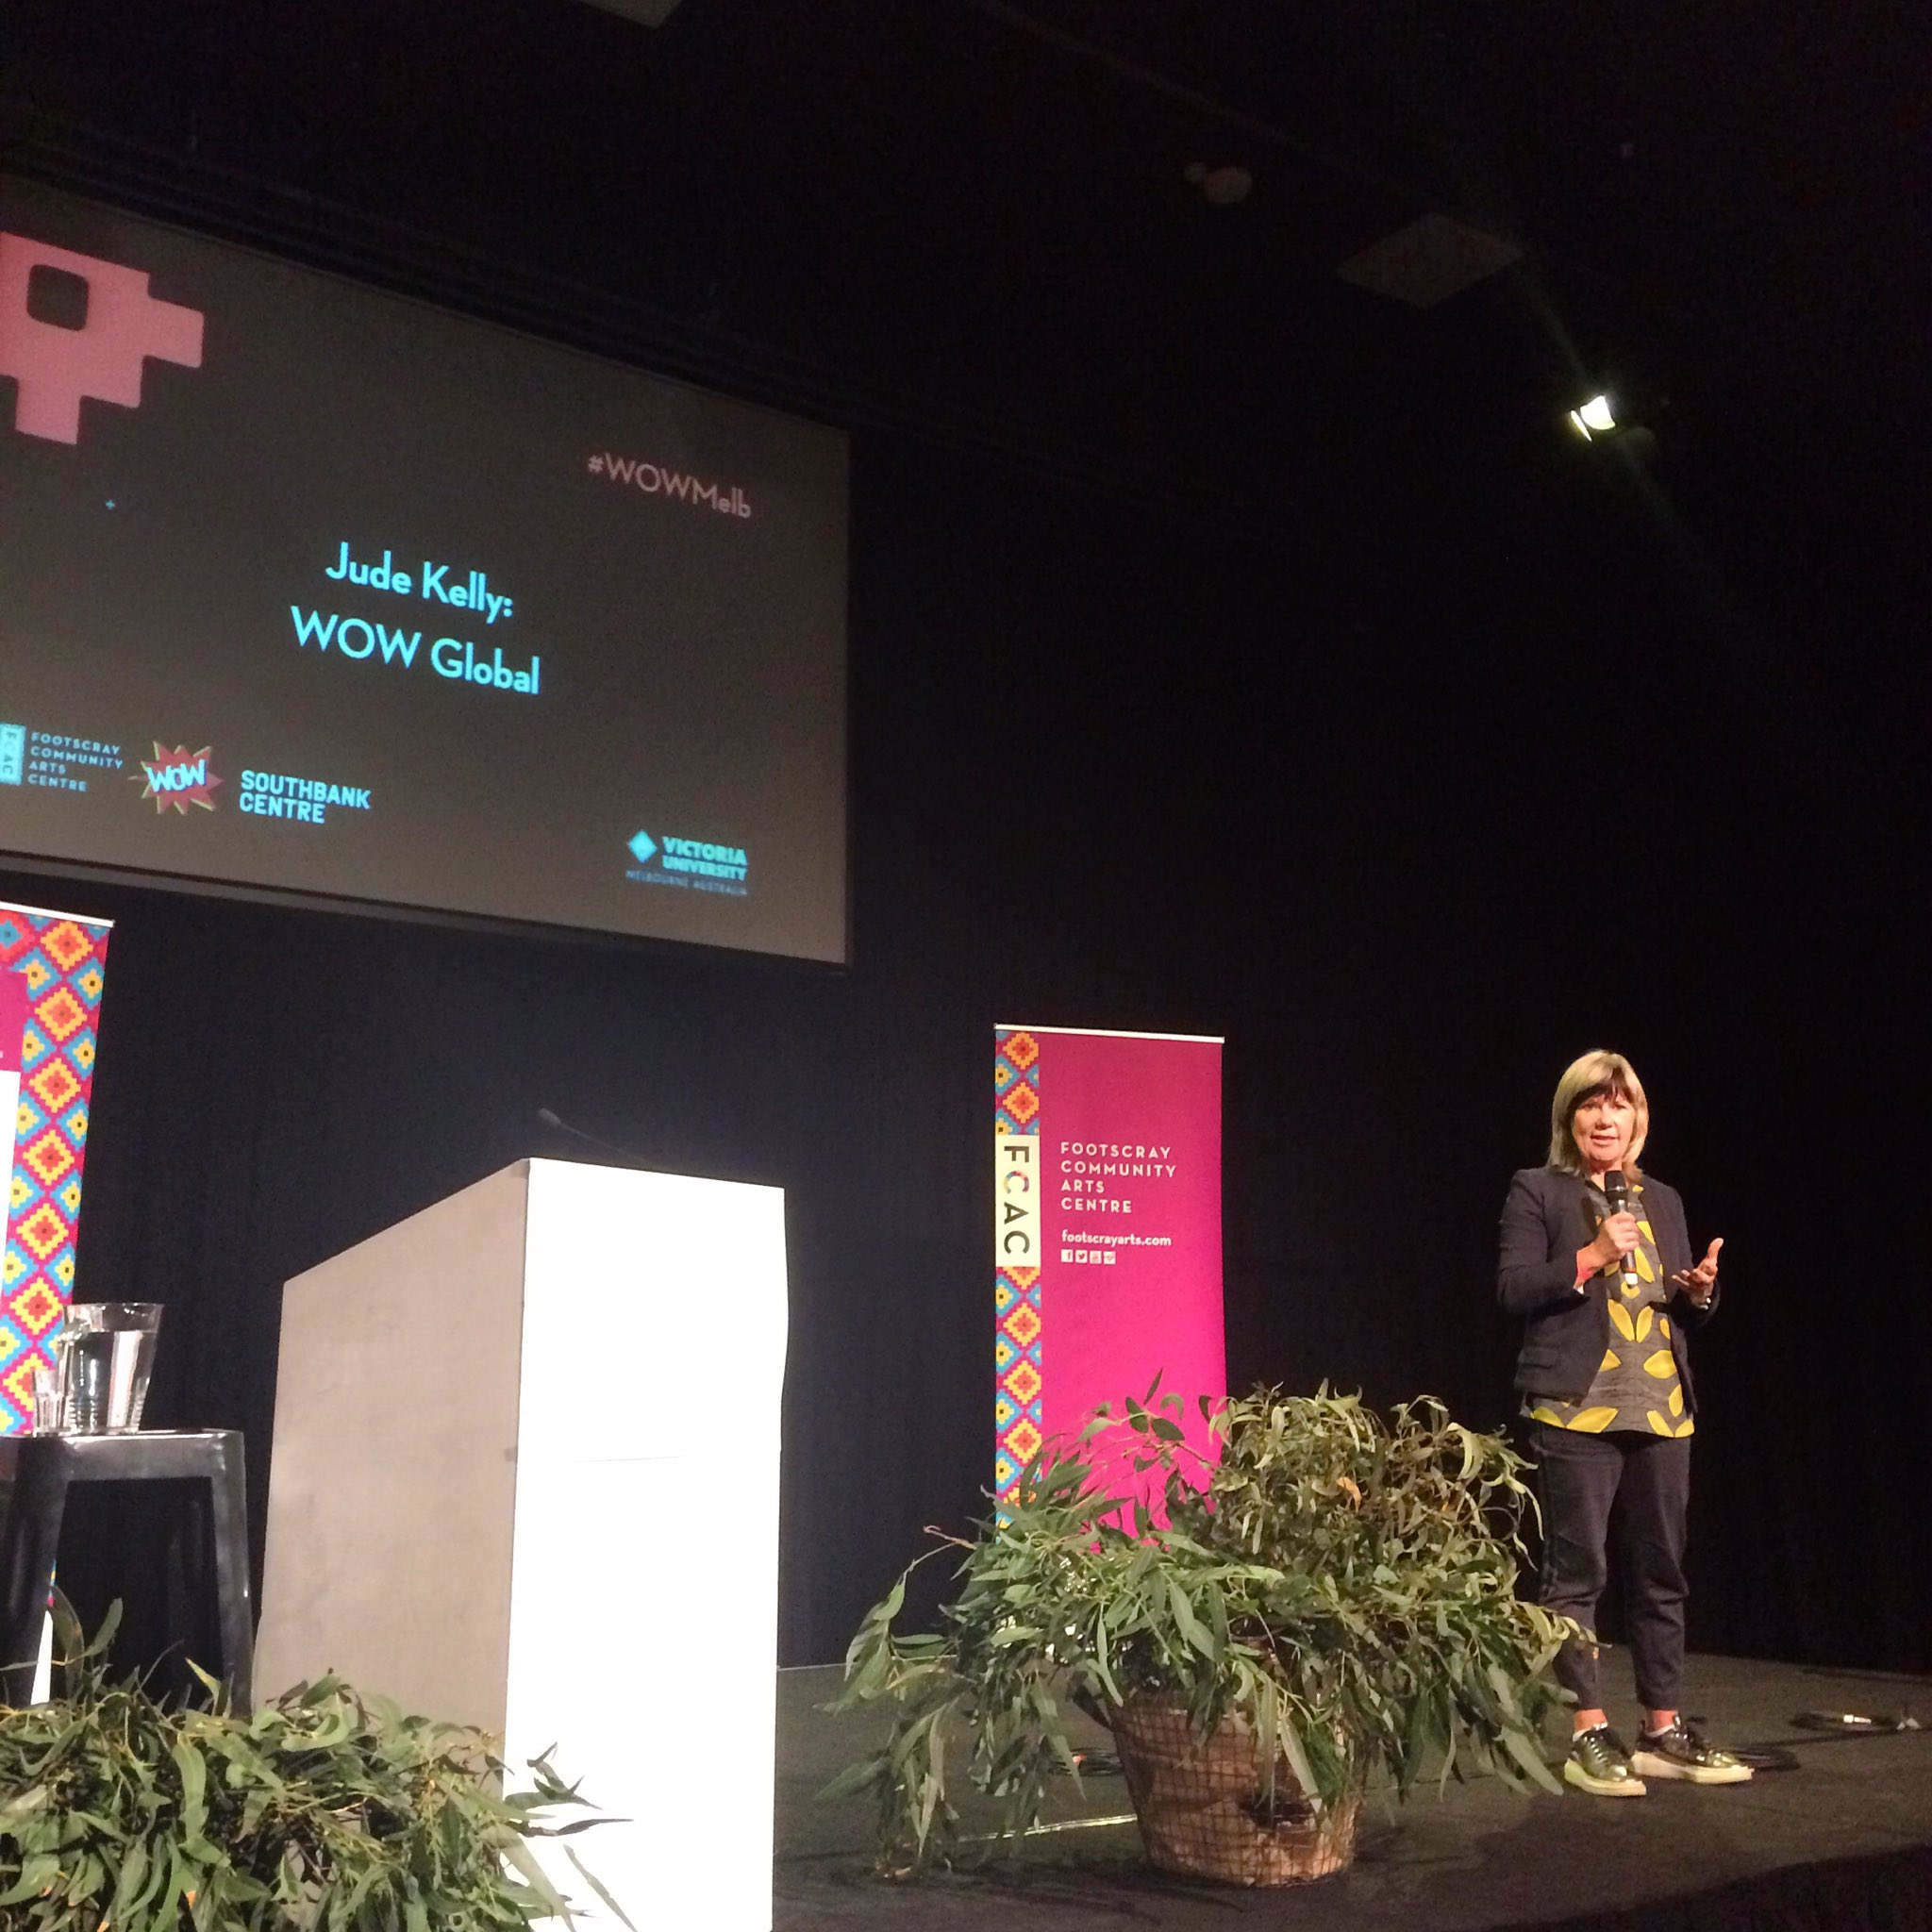 Our Artistic Director and Founder Jude Kelly CBE giving a keynote on the global WOW movement at #WOWMelb https://t.co/QDfKJzXcFN